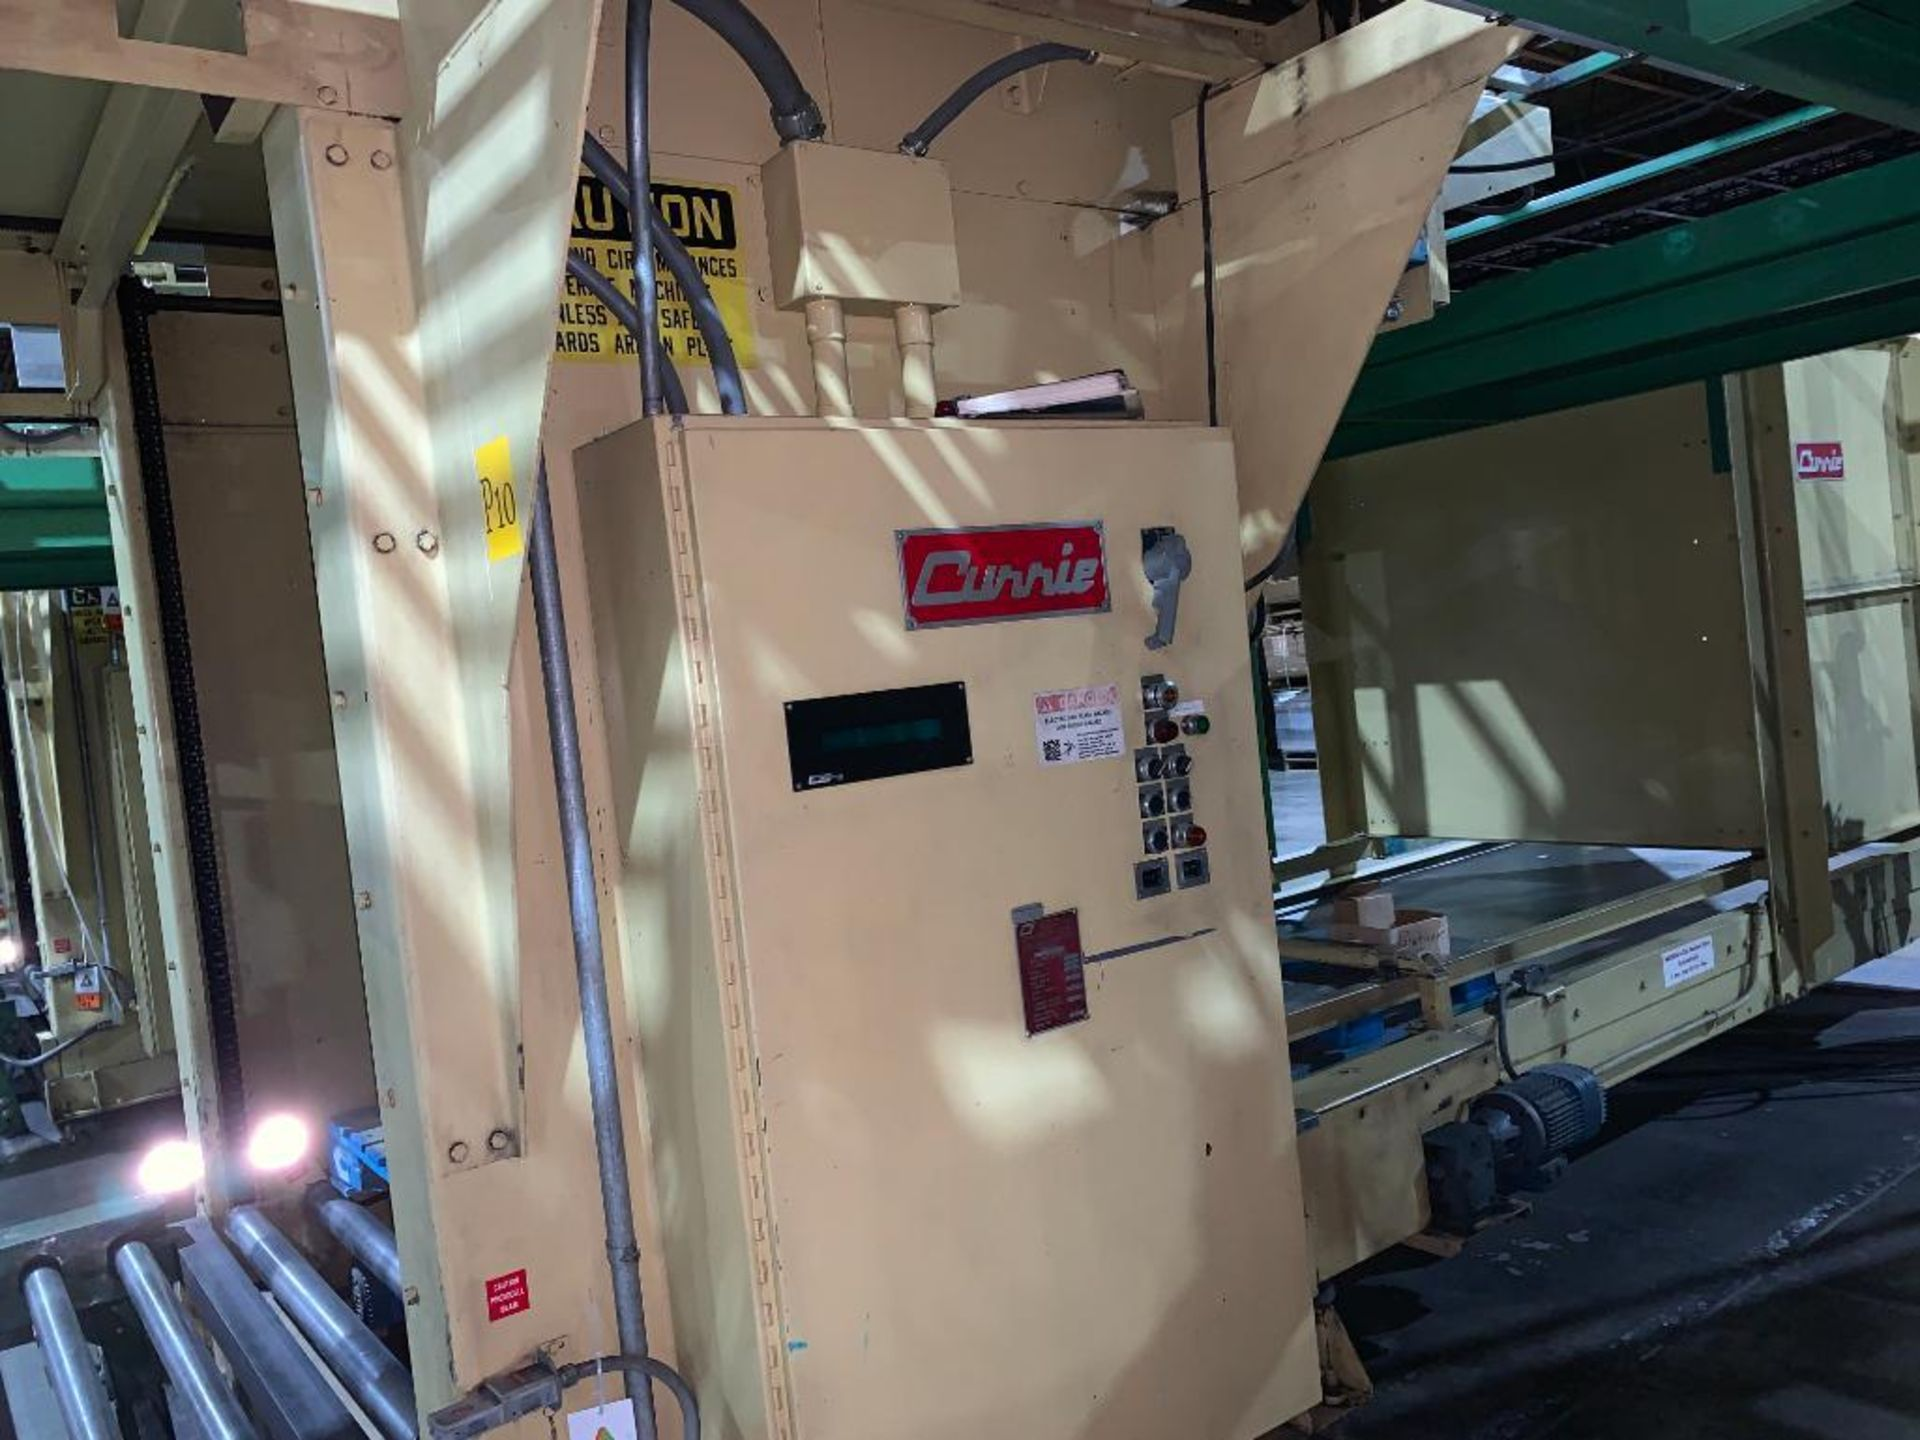 1992 Currie top to bottom palletizer, machine number LSP-5-1176 - Image 5 of 56